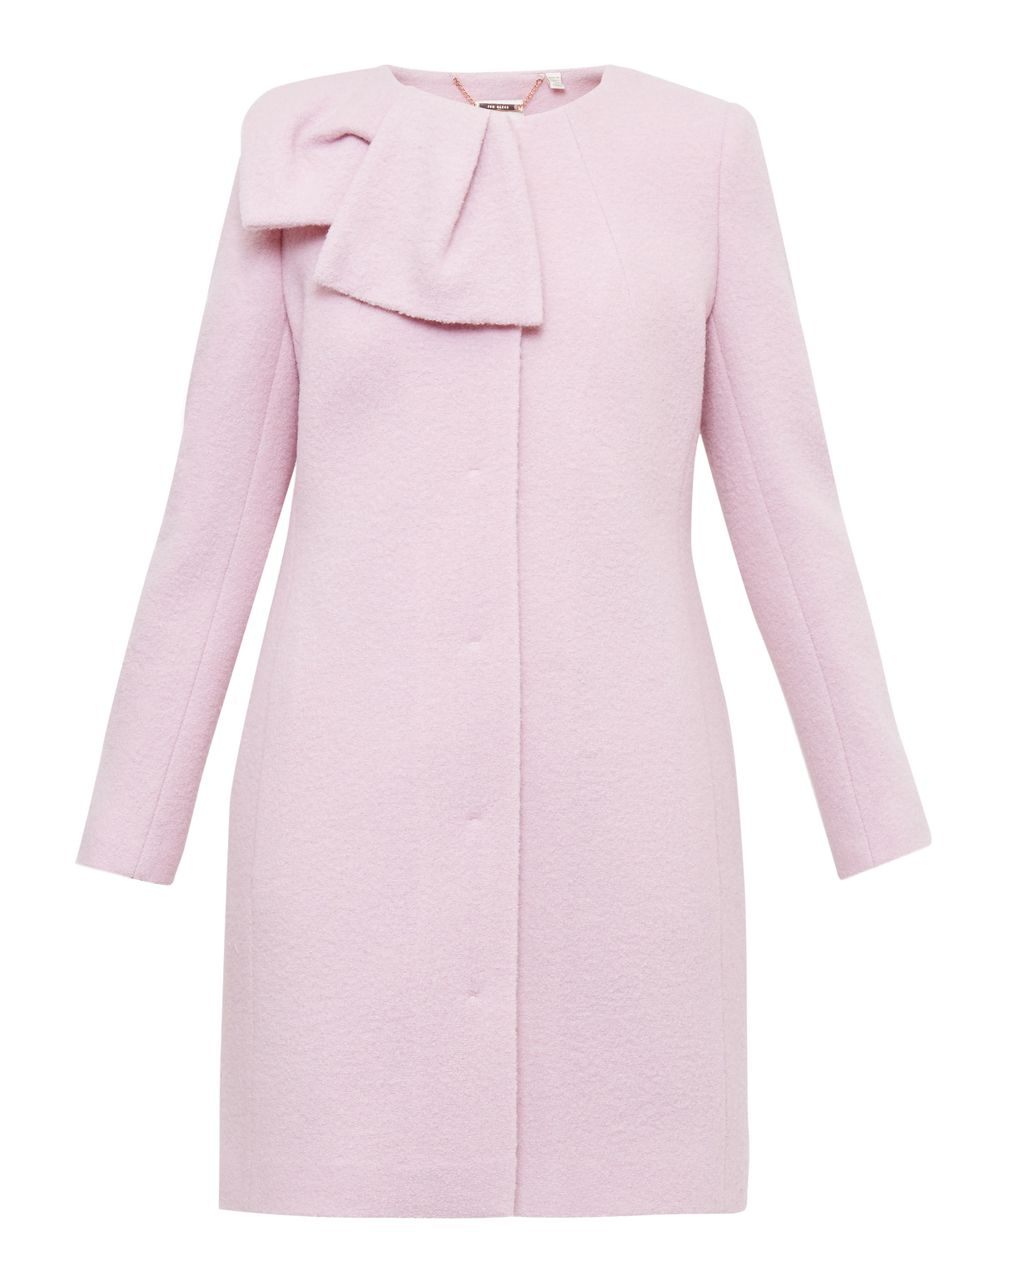 Ellmida Boiled Wool Coat, Blush - pattern: plain; length: below the bottom; bust detail: added detail/embellishment at bust; collar: round collar/collarless; style: single breasted; predominant colour: blush; occasions: casual; fit: tailored/fitted; fibres: wool - 100%; sleeve length: long sleeve; sleeve style: standard; collar break: high; pattern type: fabric; texture group: woven bulky/heavy; embellishment: bow; season: a/w 2016